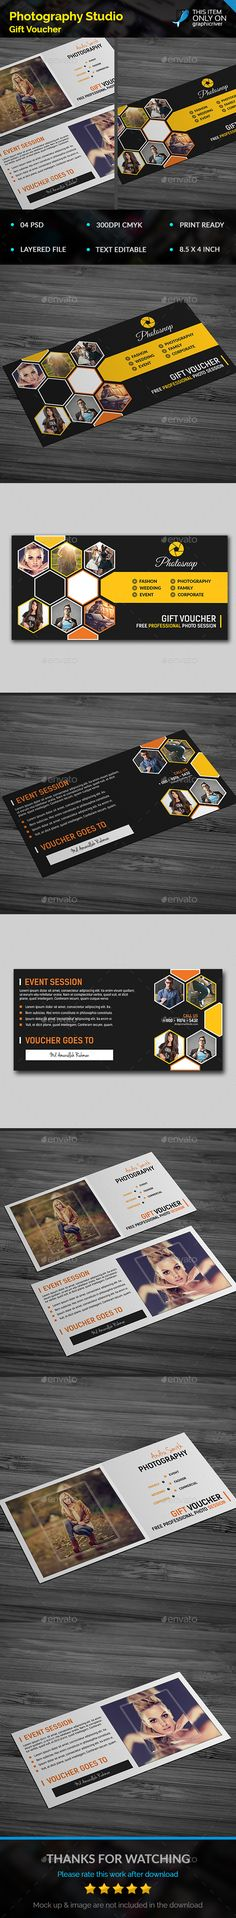 Gift Voucher Gift, Template and Banners - gift voucher template